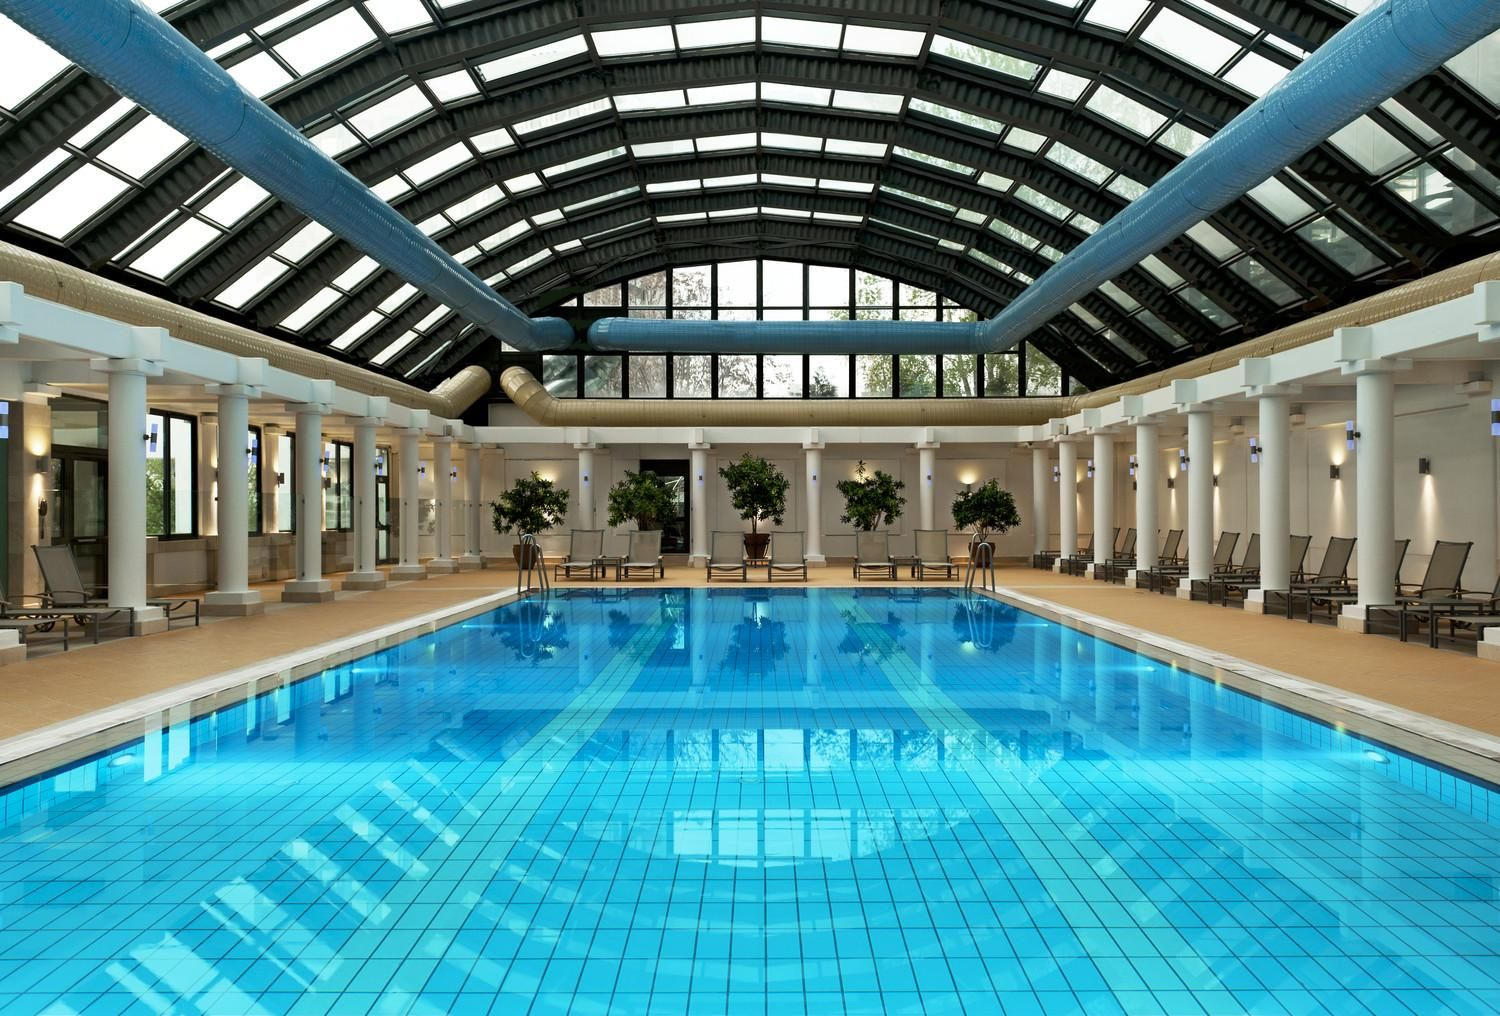 Luxurious Indoor Pool Design With Huge Rectangle Shaped Pool And Lovely Beach Chairs And